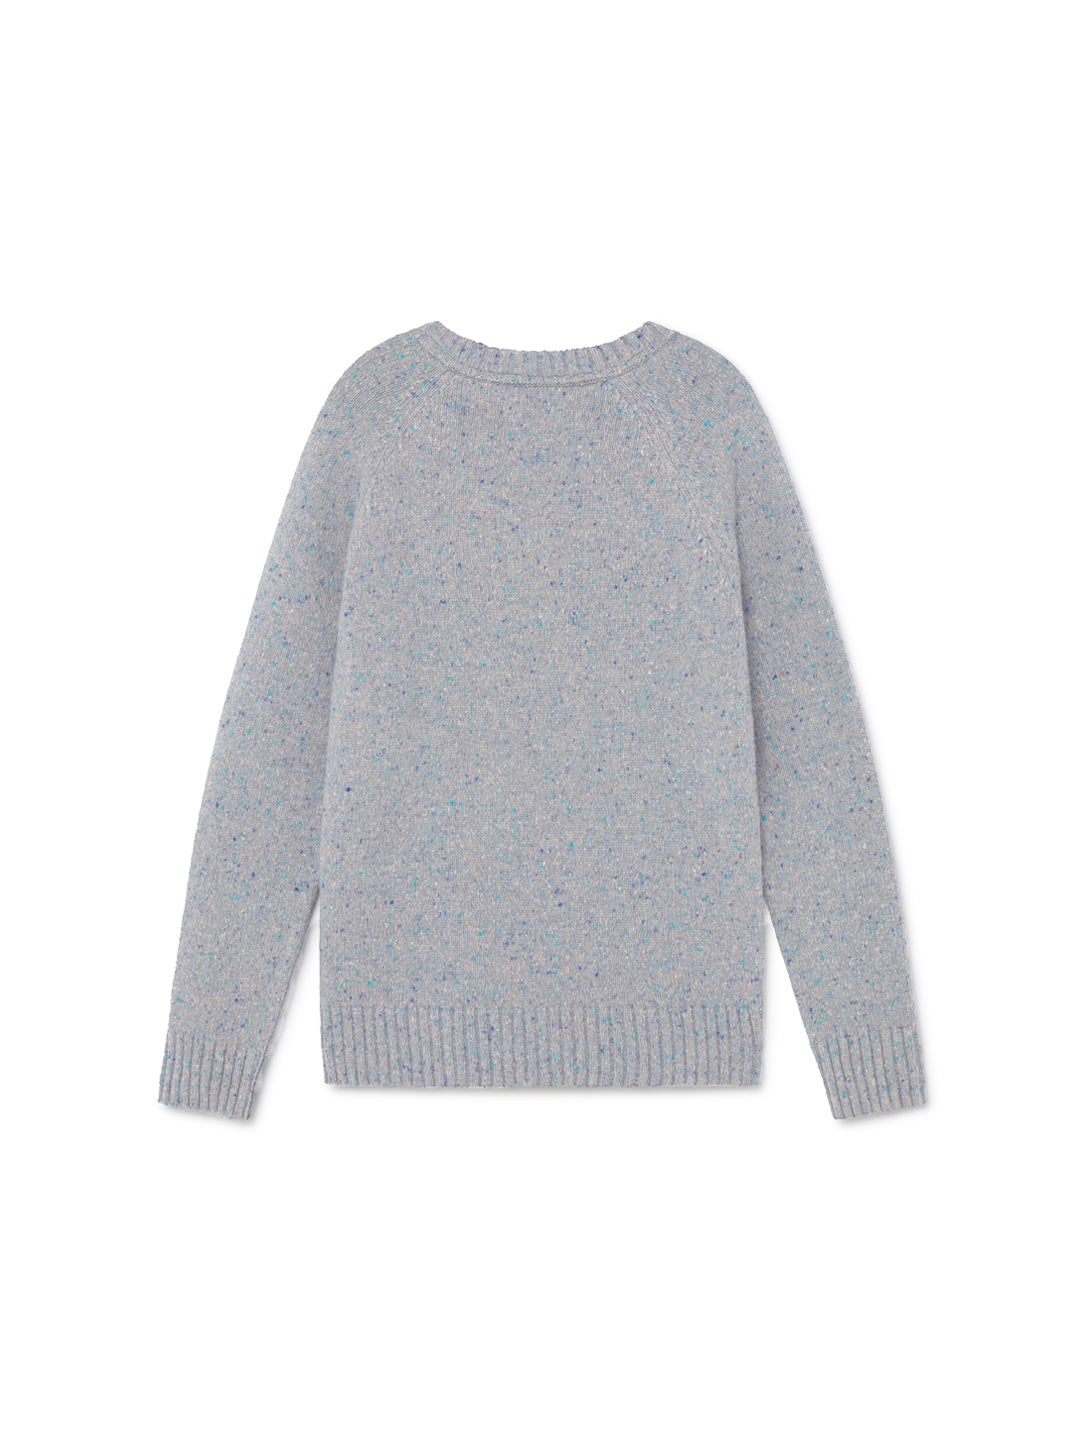 TWOTHIRDS Womens Knit: Agpat - Lavender back